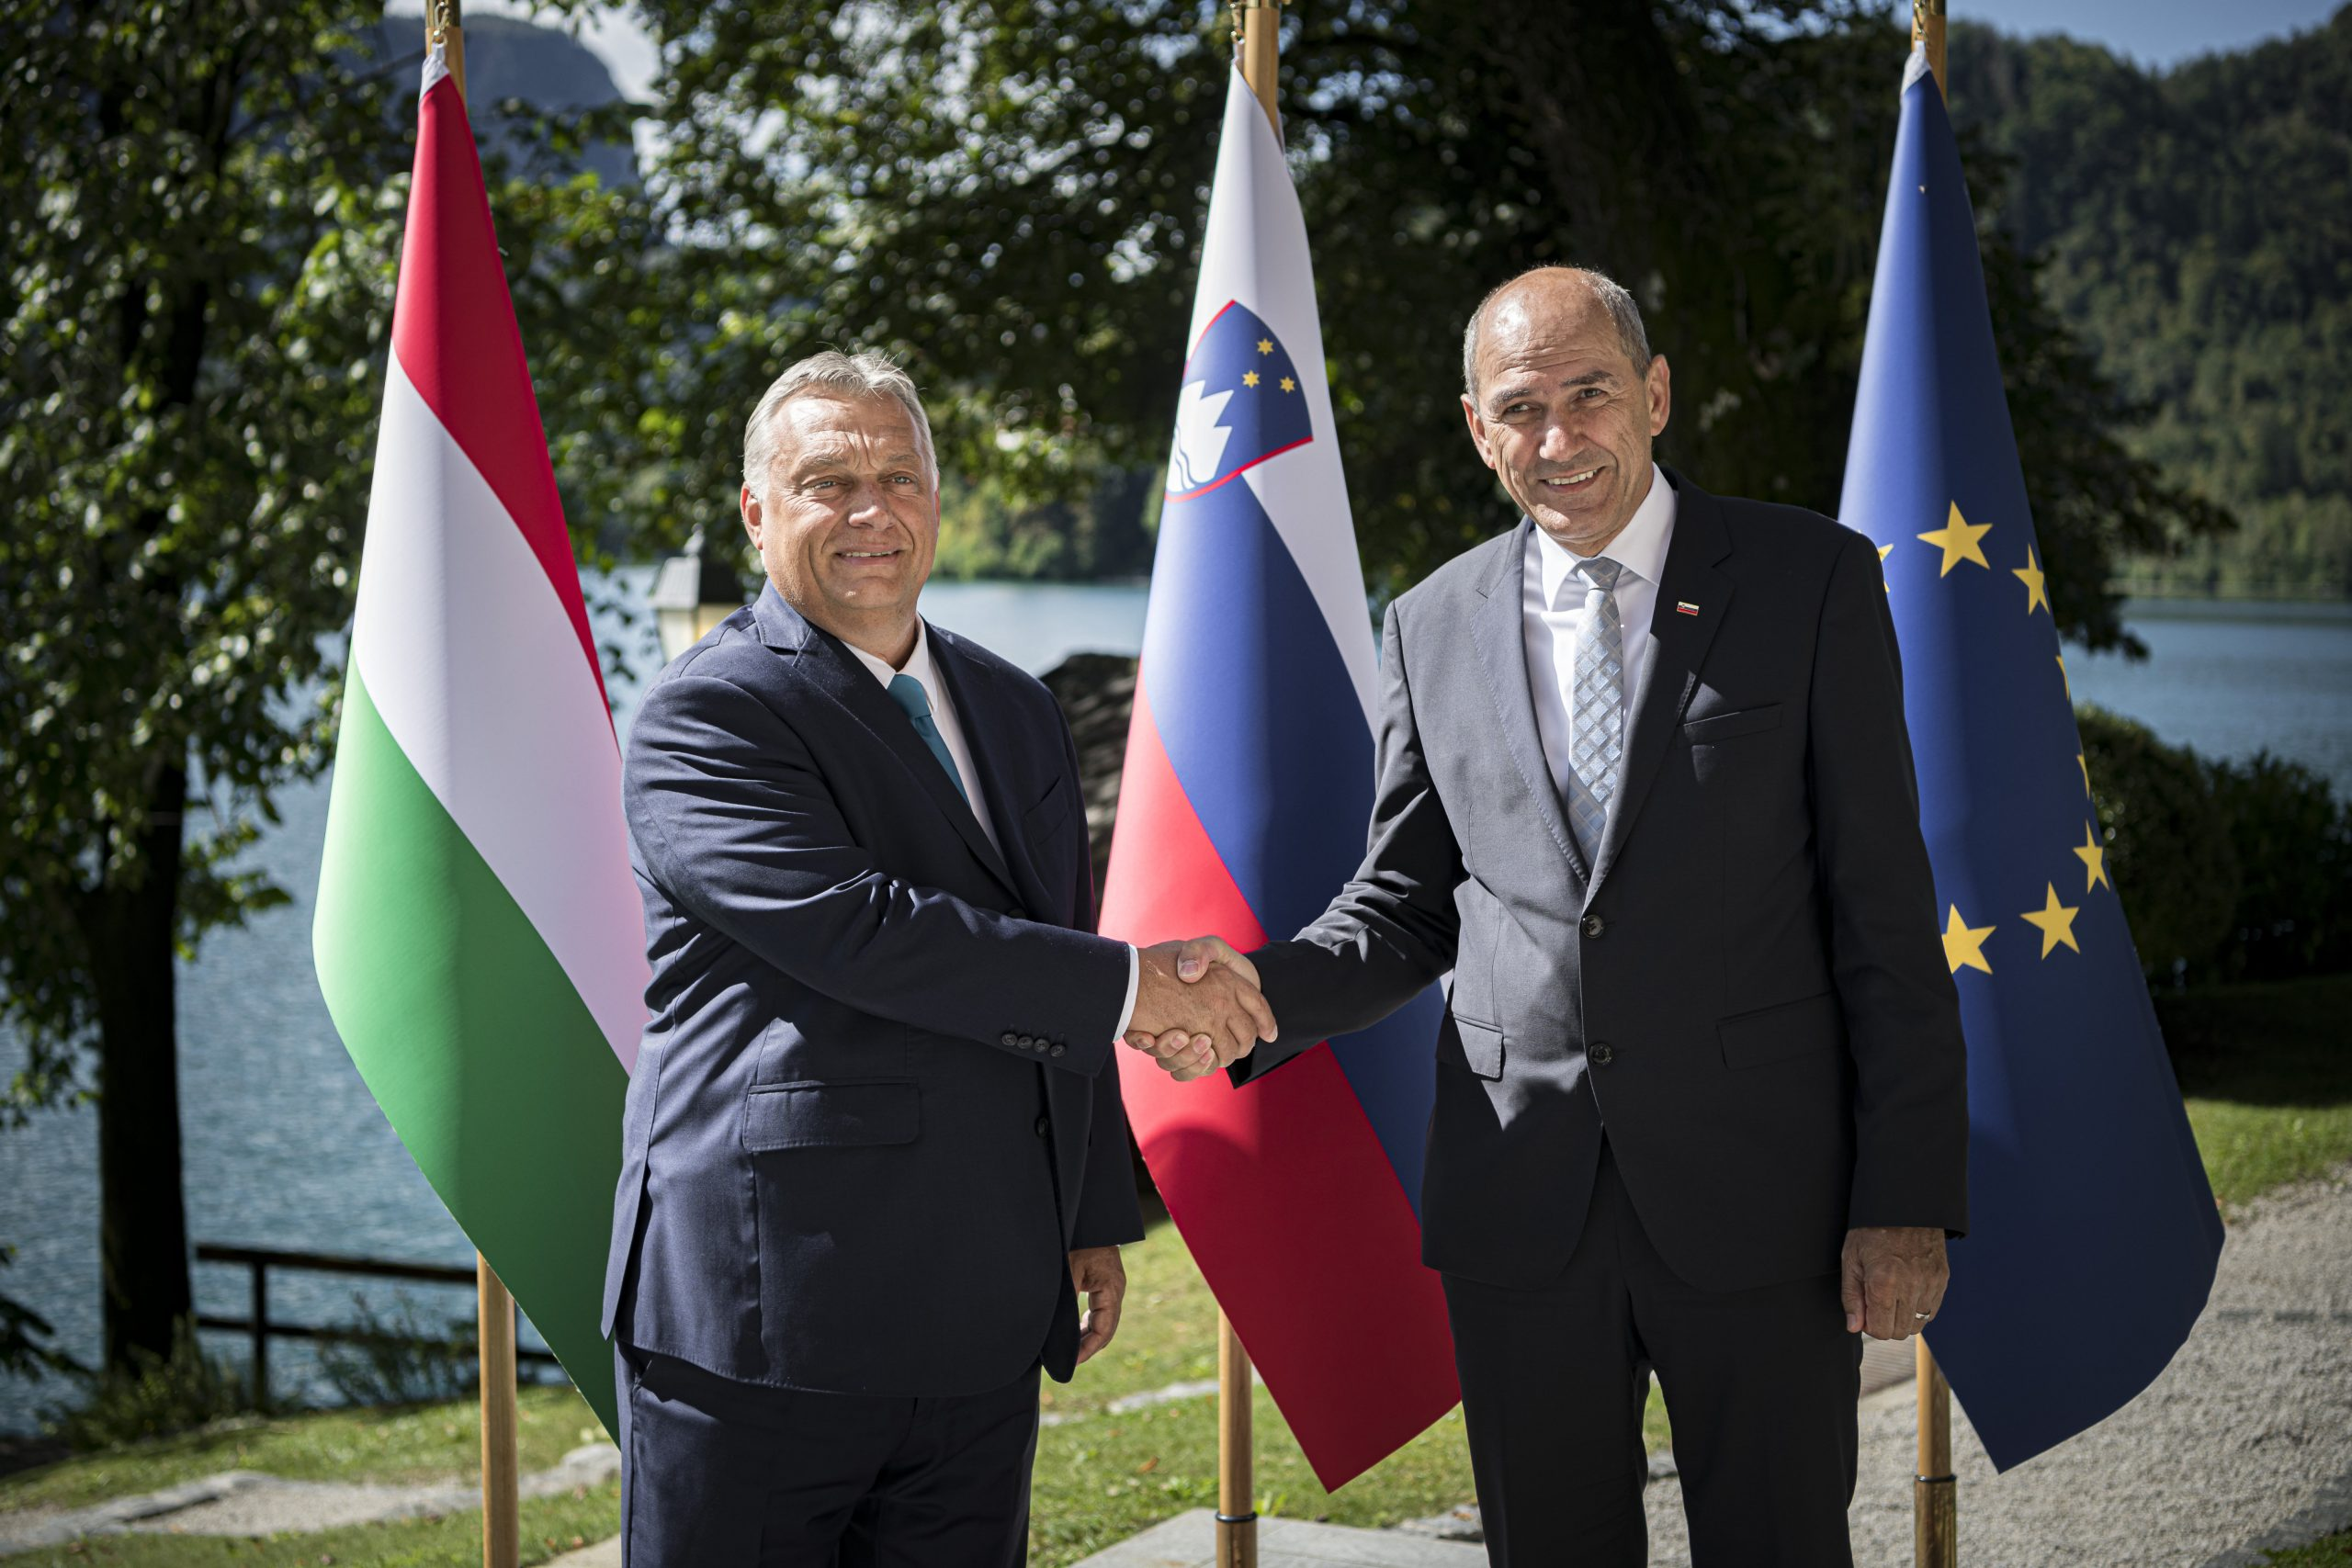 Orbán: Hungary Aims for Strategic, Long-term Cooperation with Slovenia post's picture